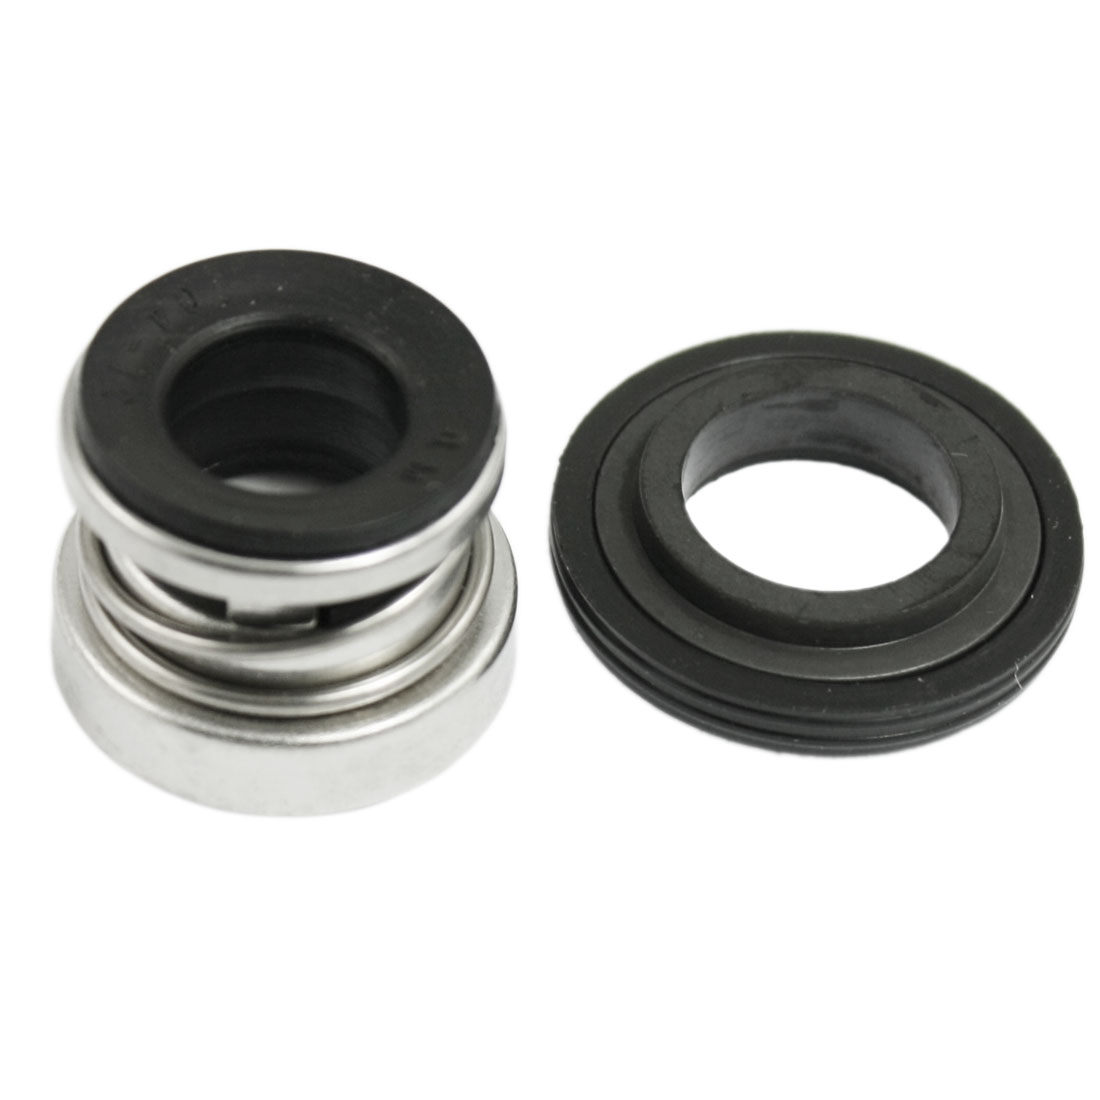 12mm Internal Diameter Spring Inbuilt Mechanical Shaft Seal 2 Pcs